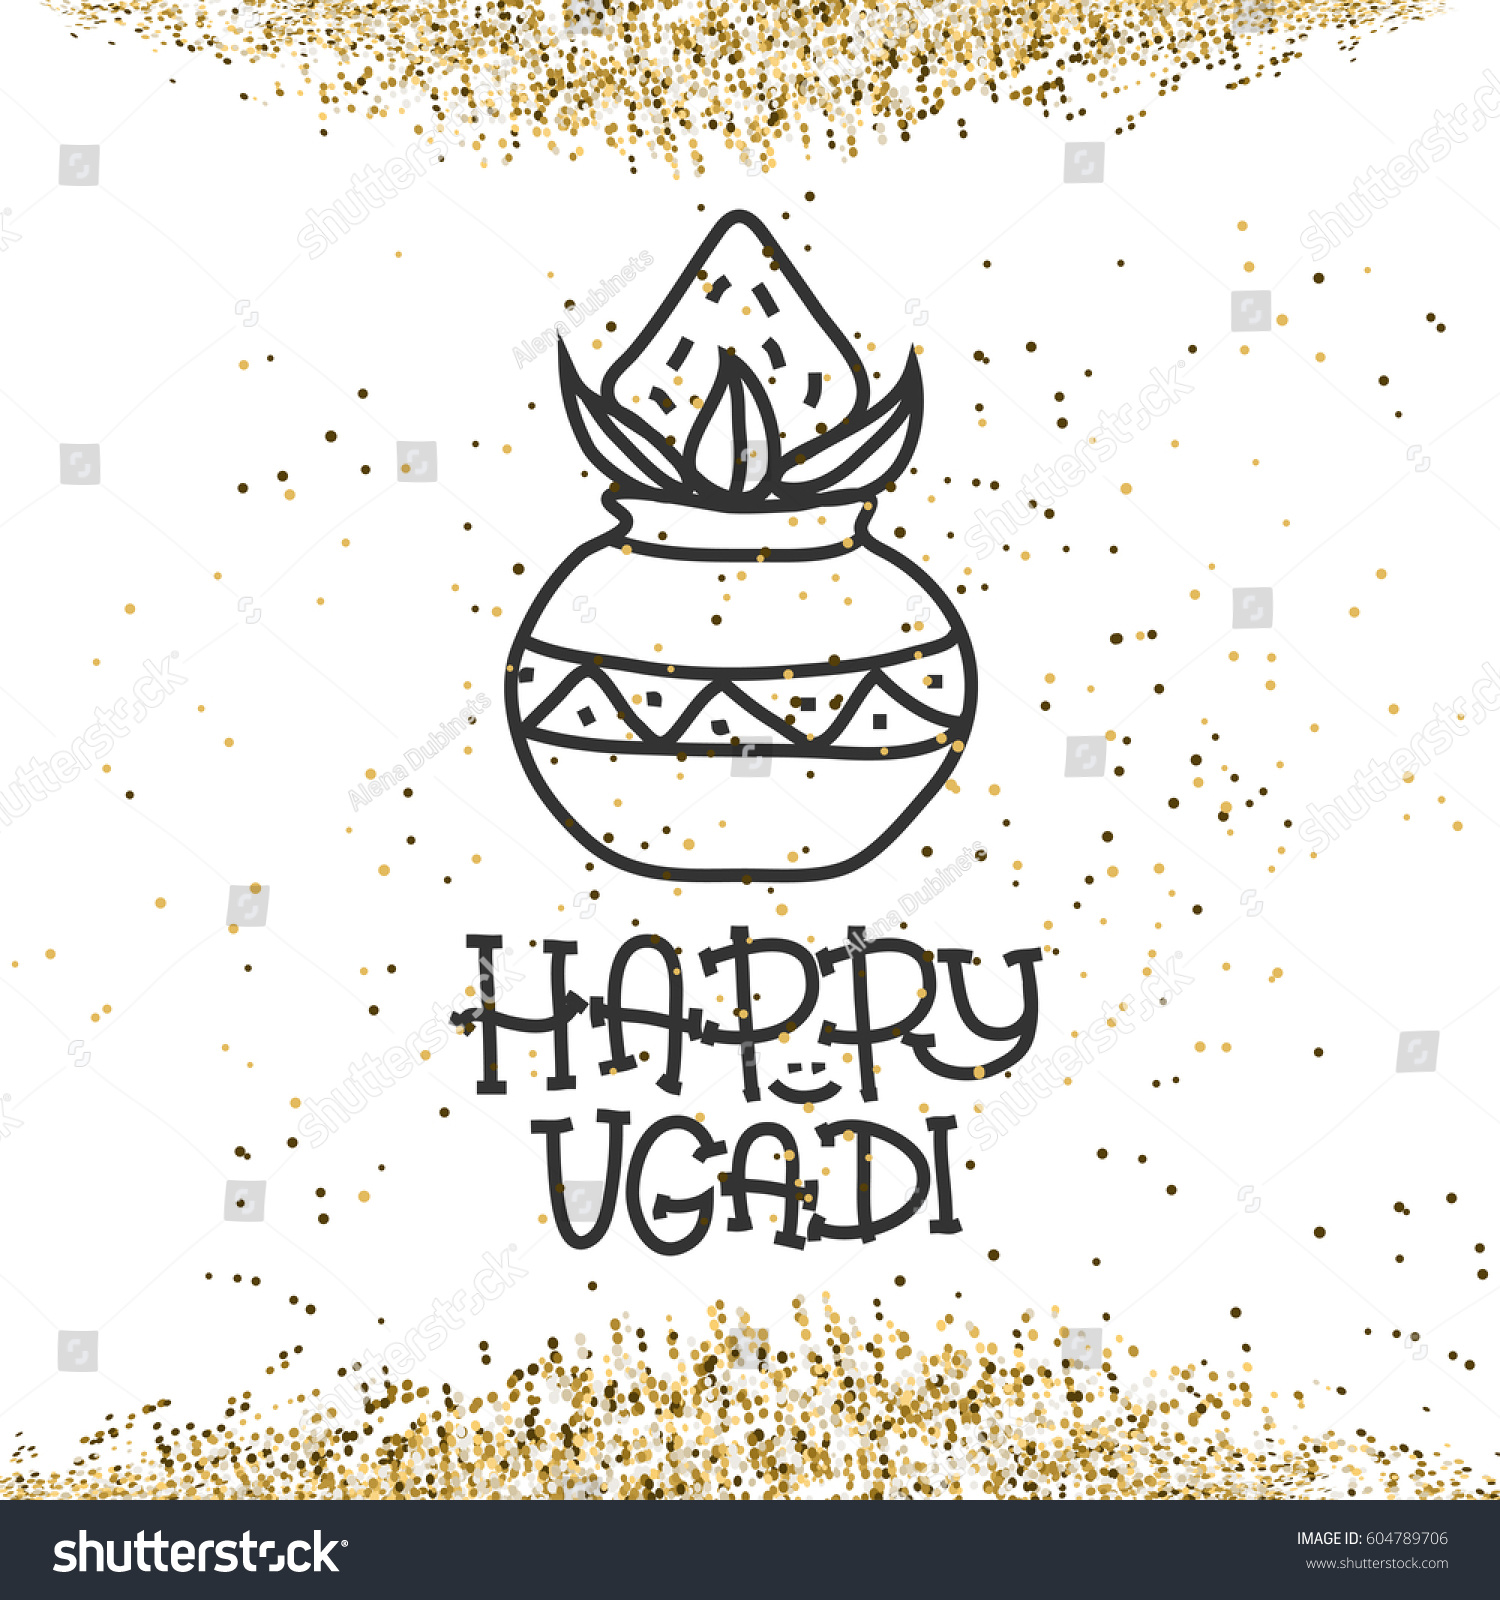 Happy Ugadi Hindu New Year Greeting Stock Vector 604789706